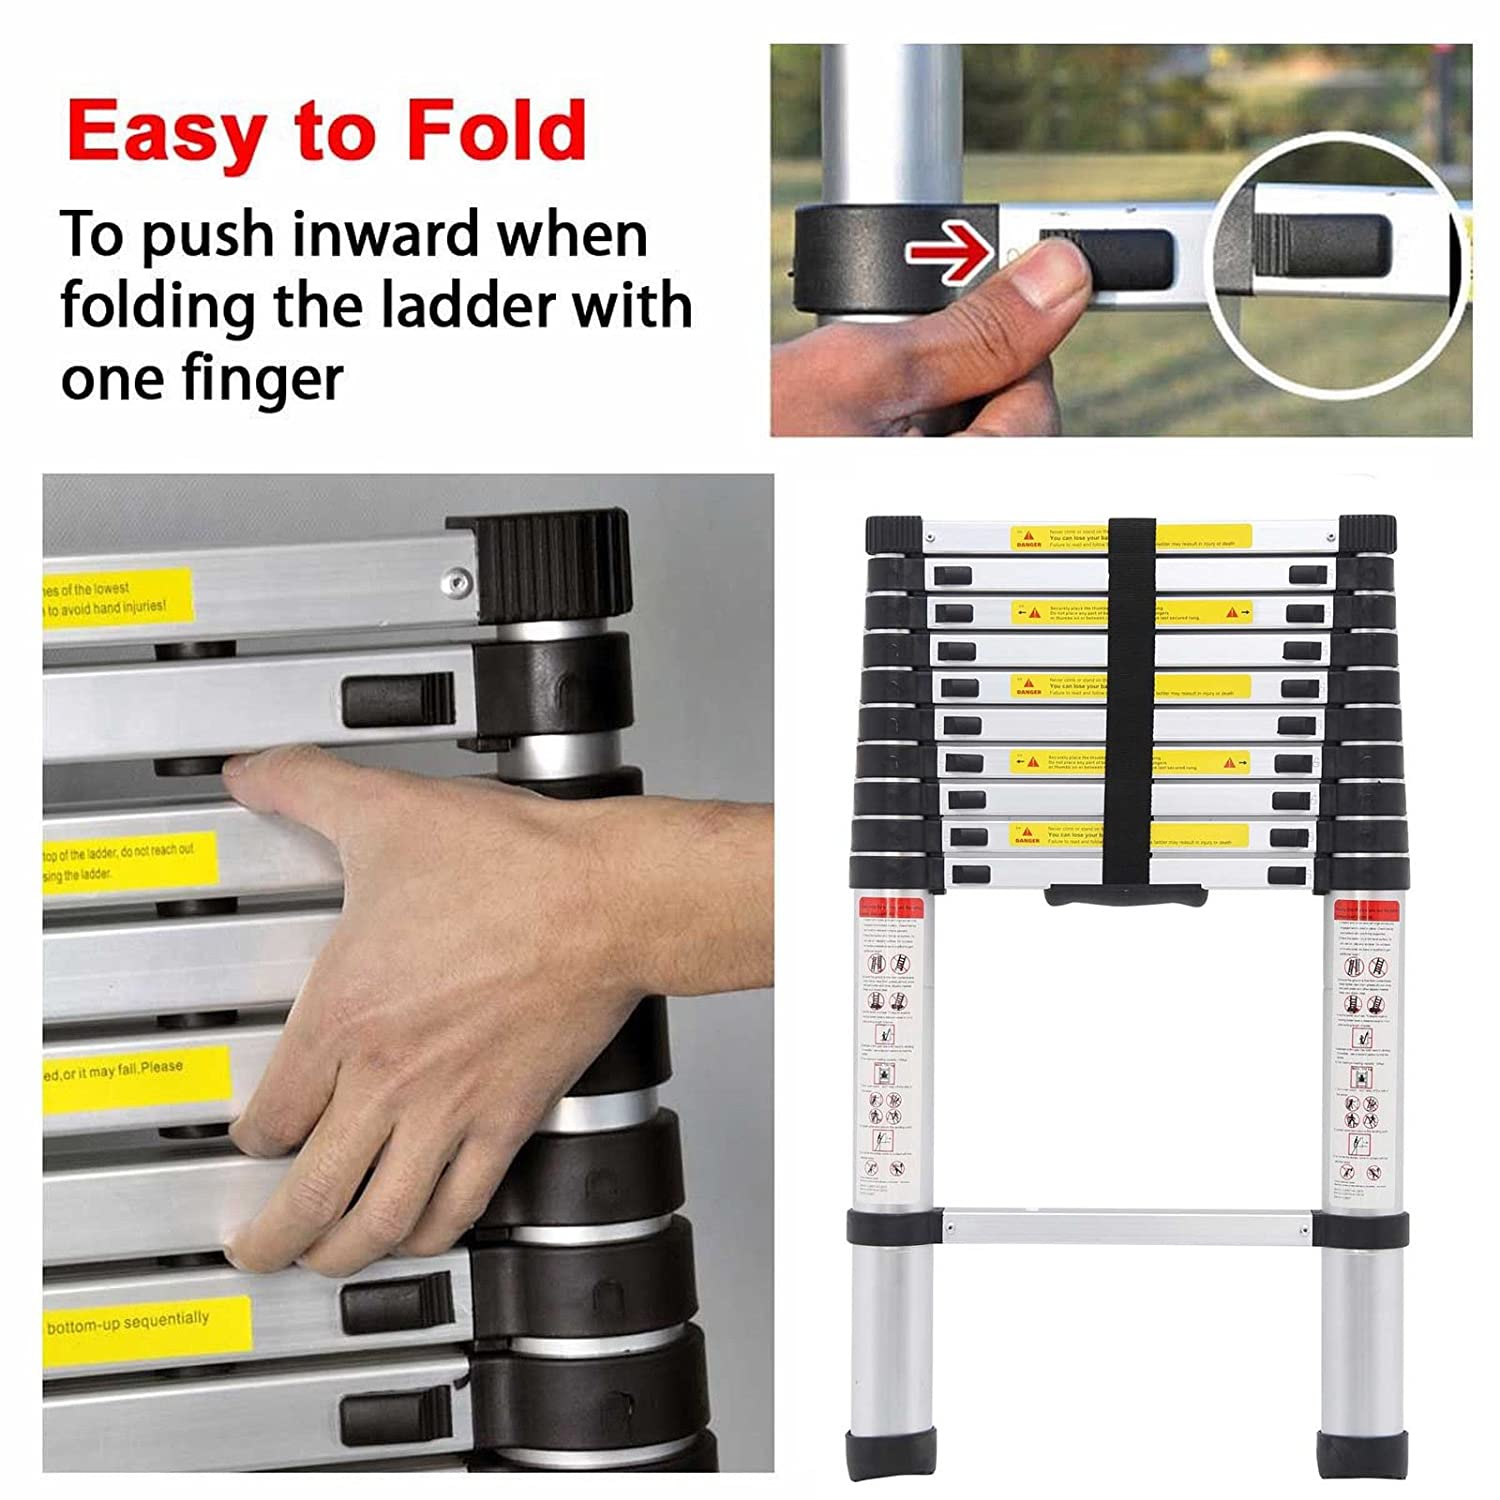 14-in-1 4x4 Aluminium Multi Purpose Folding Extension Ladder 4.7M 15.5FT Heavy Duty Combination Step 1 Painting Tray Manufactured to EN131 Up to 330lbs//150kg ZanGe Factory